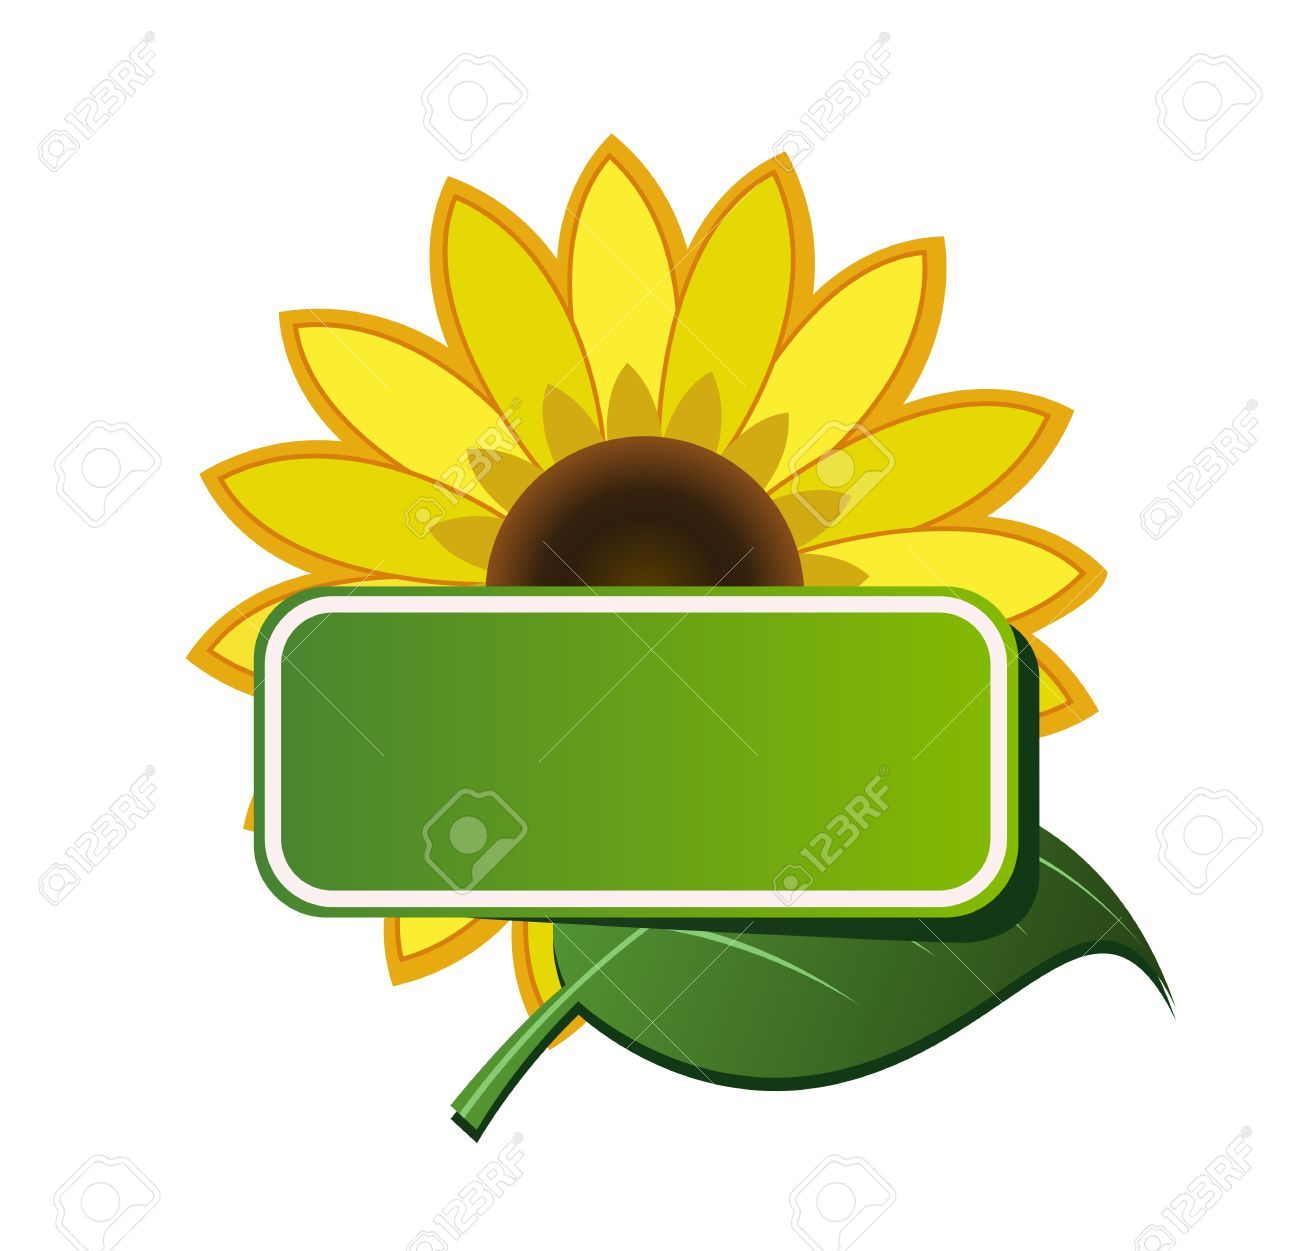 1 134 sunflower border stock vector illustration and royalty free rh 123rf com sunflower border clip art free Printable Sunflower Border Clip Art